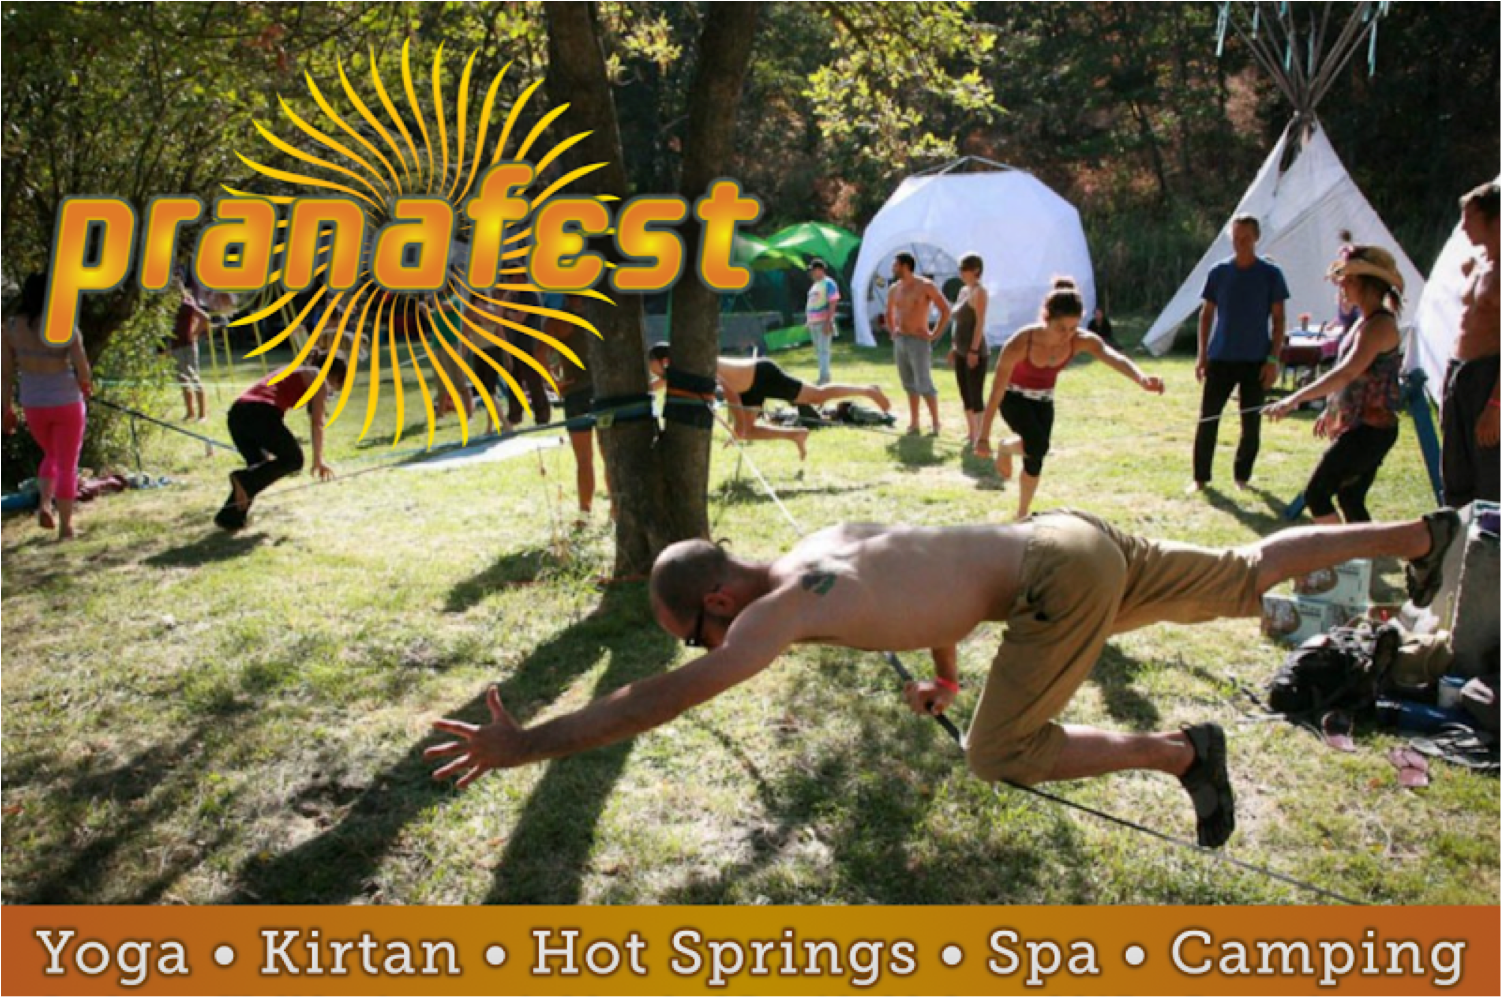 Yoga Philosophy and Practice for the Pranafest Yoga and Kirtan Festival, Ashland, OR